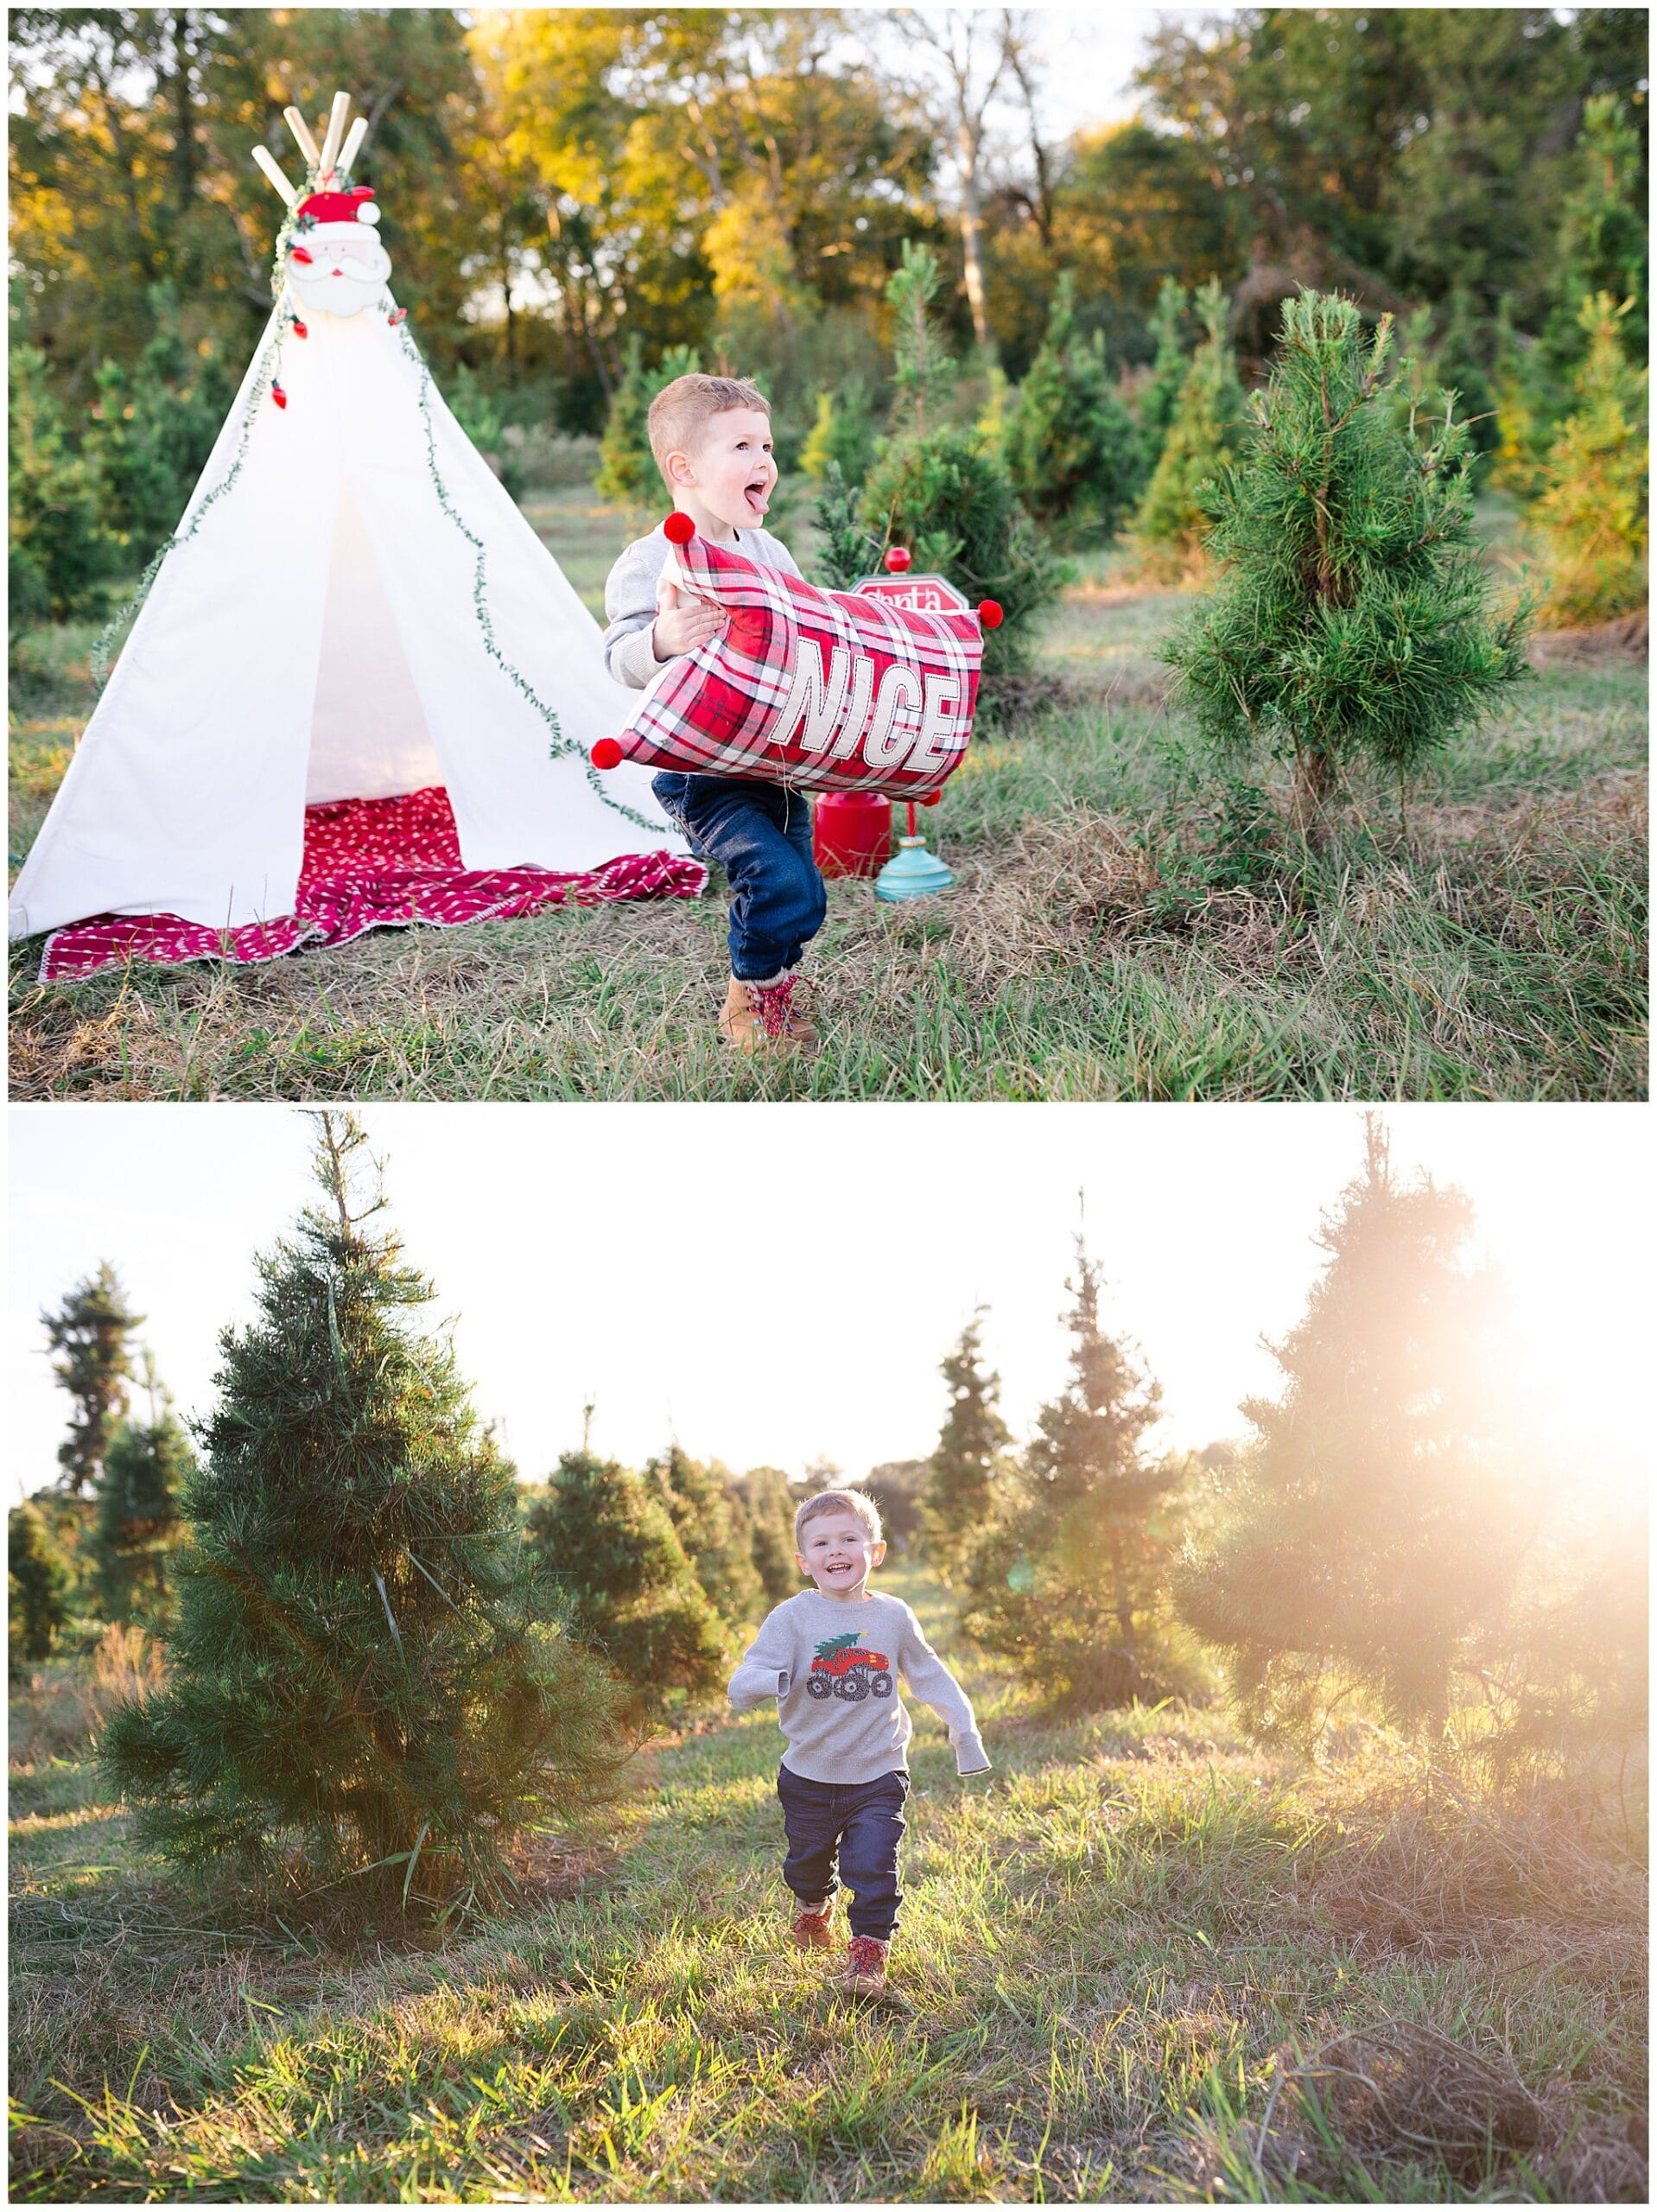 young boy at Christmas tree farm for family portraits by Swish and Click Photography at Holiday Acres Farm in Manvel Texas